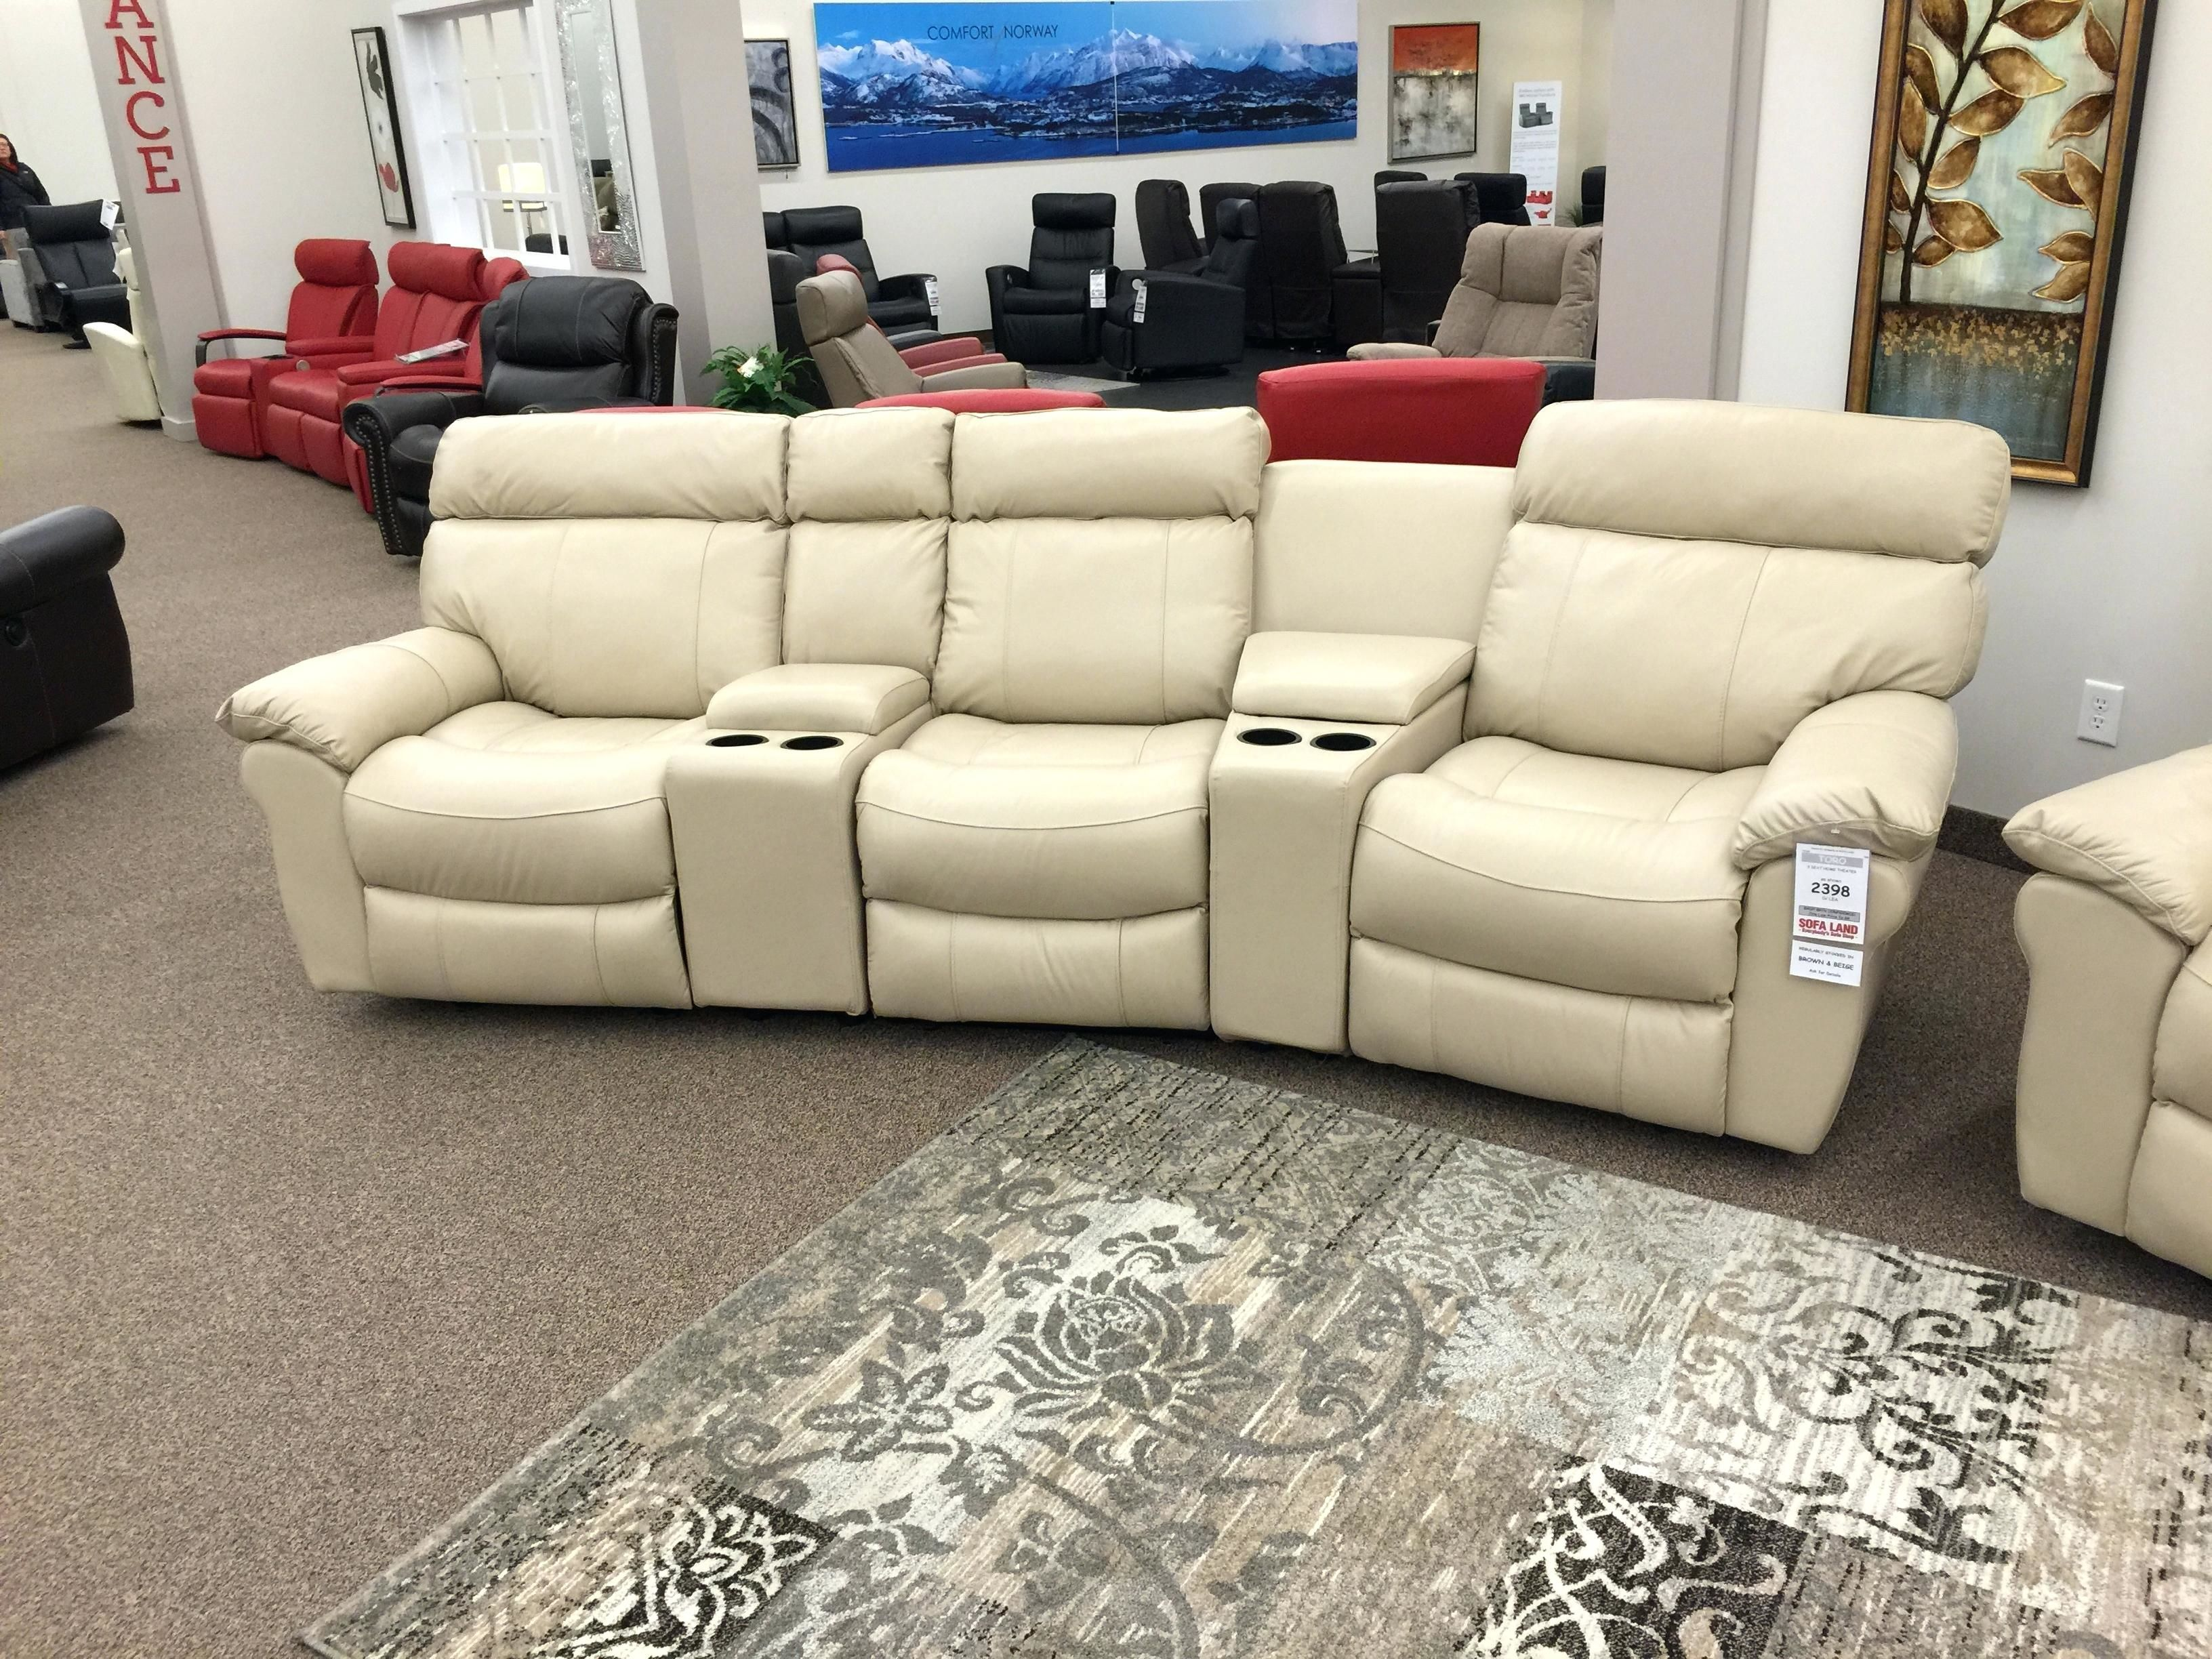 contemporary curved reclining sofa online-Wonderful Curved Reclining sofa Décor